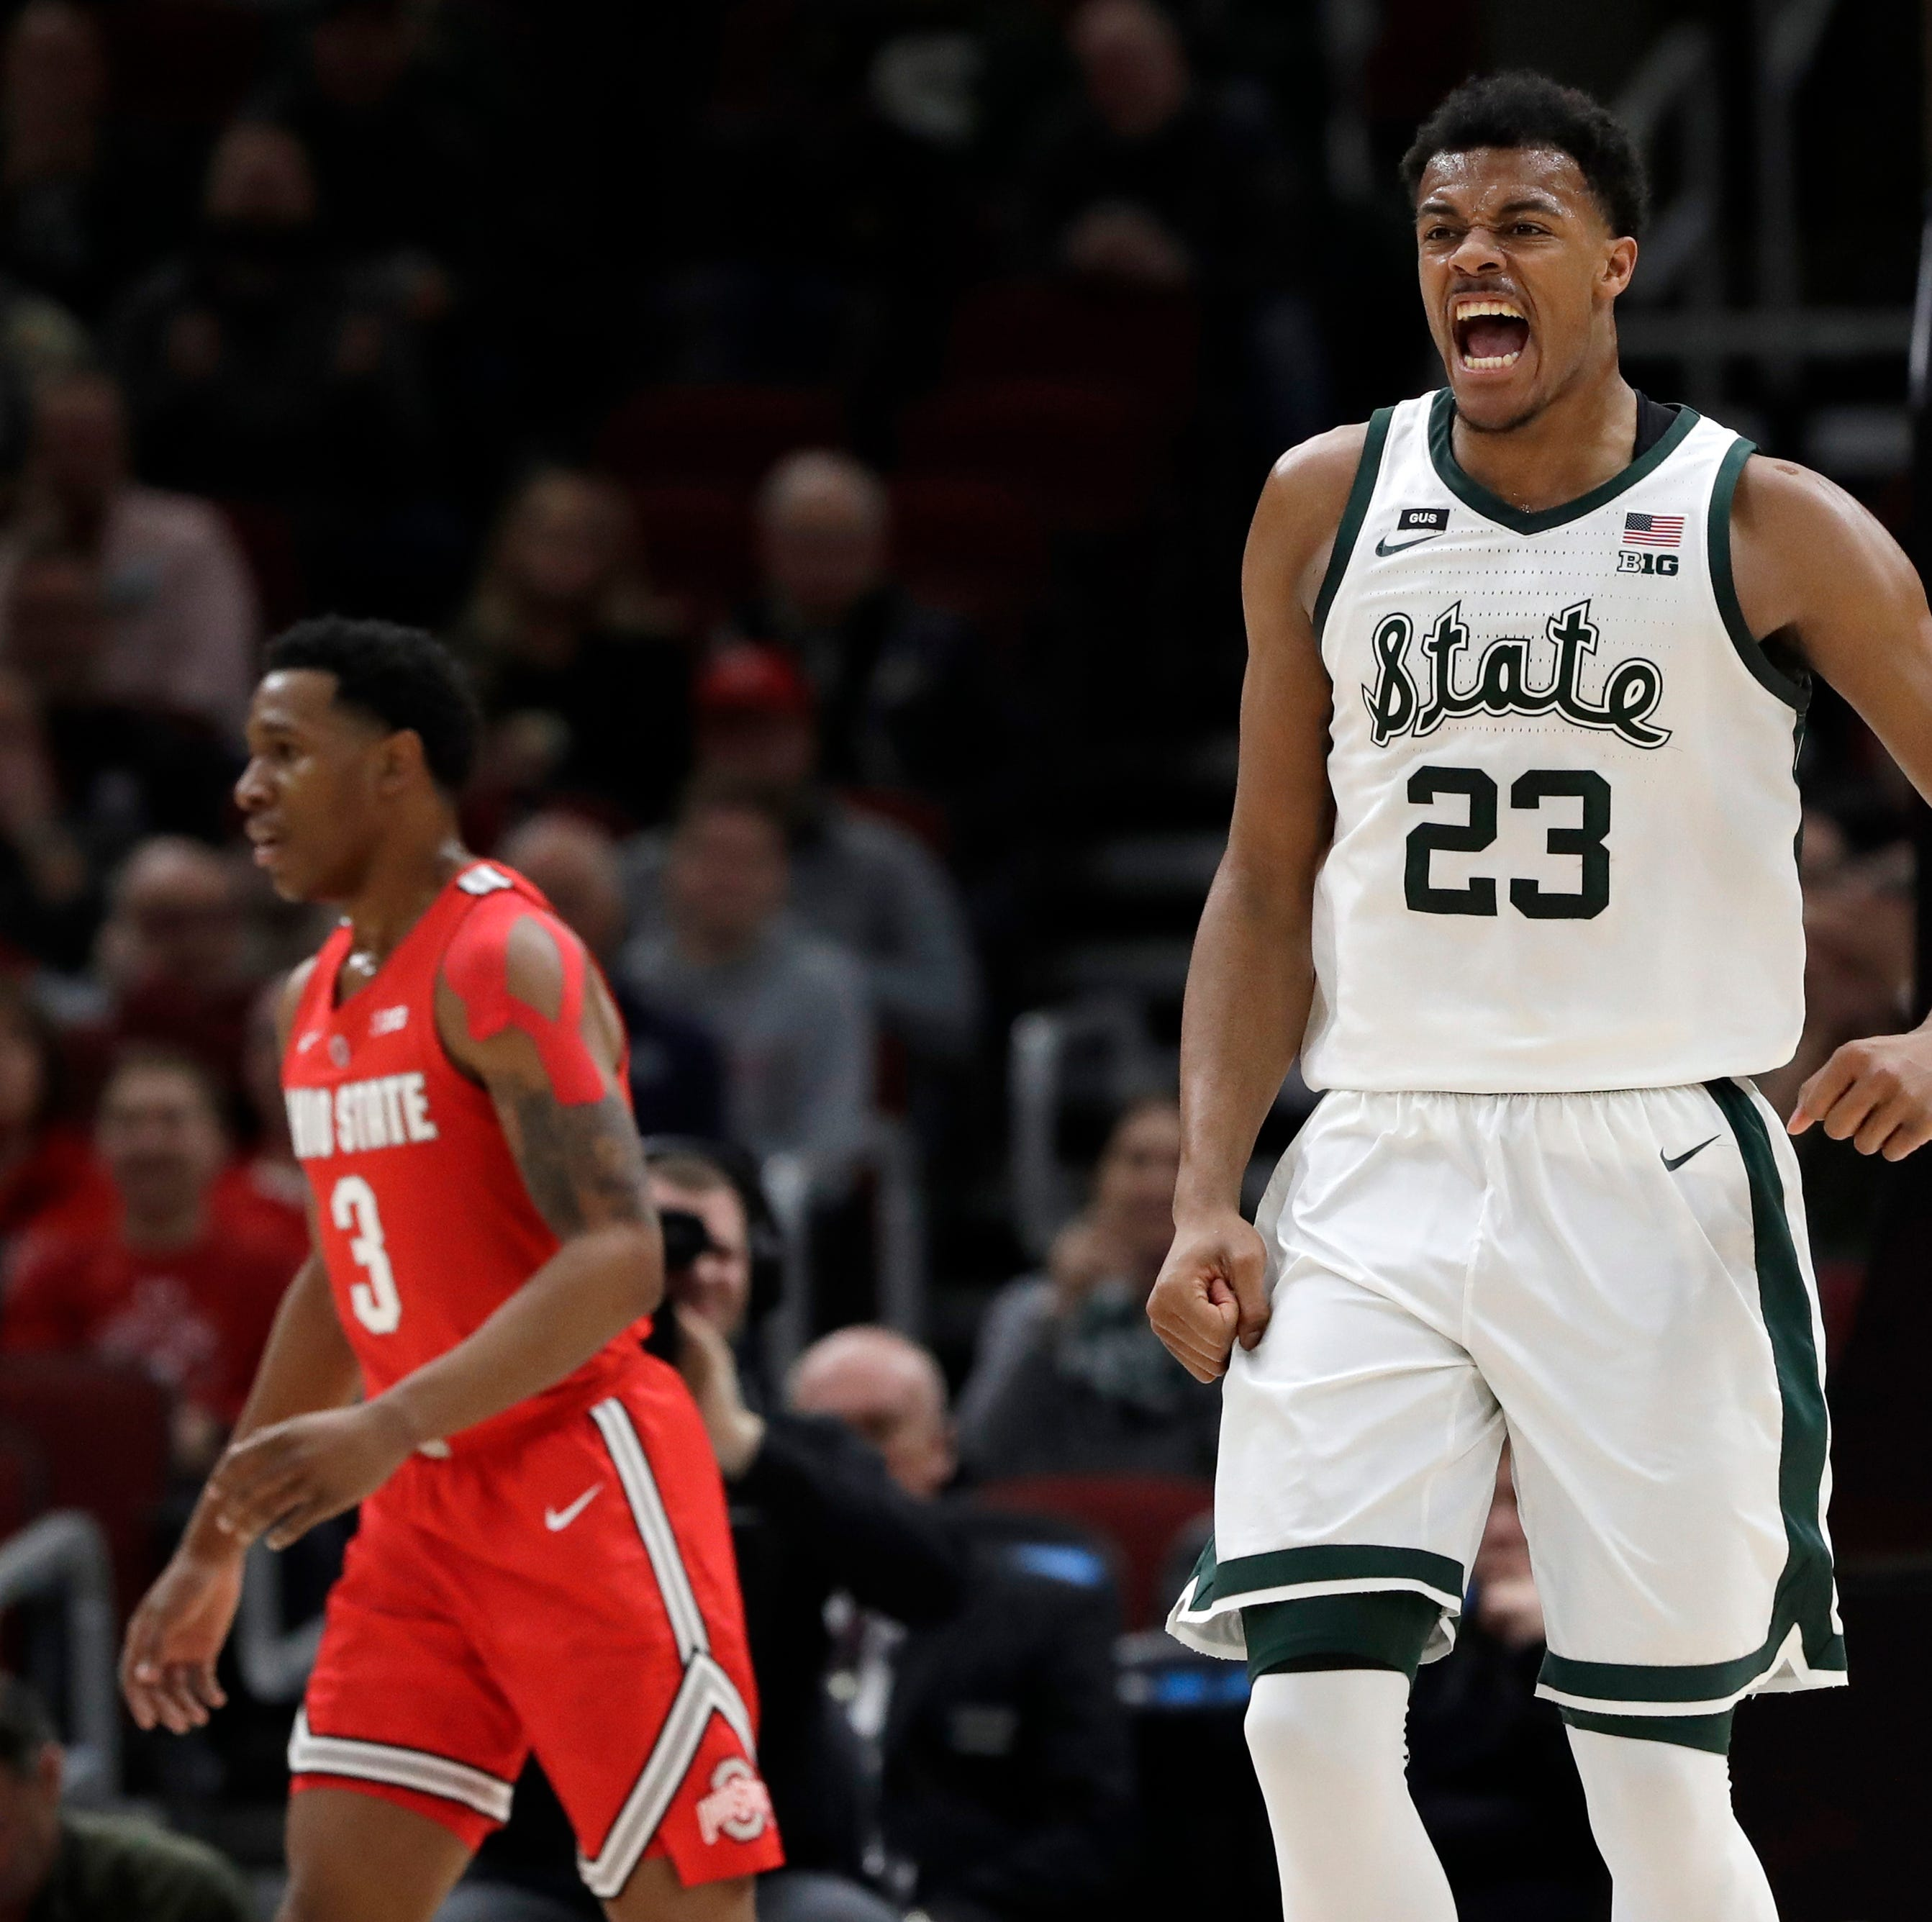 RECAP: Strong second half lifts MSU over OSU in B10 tournament, 77-70